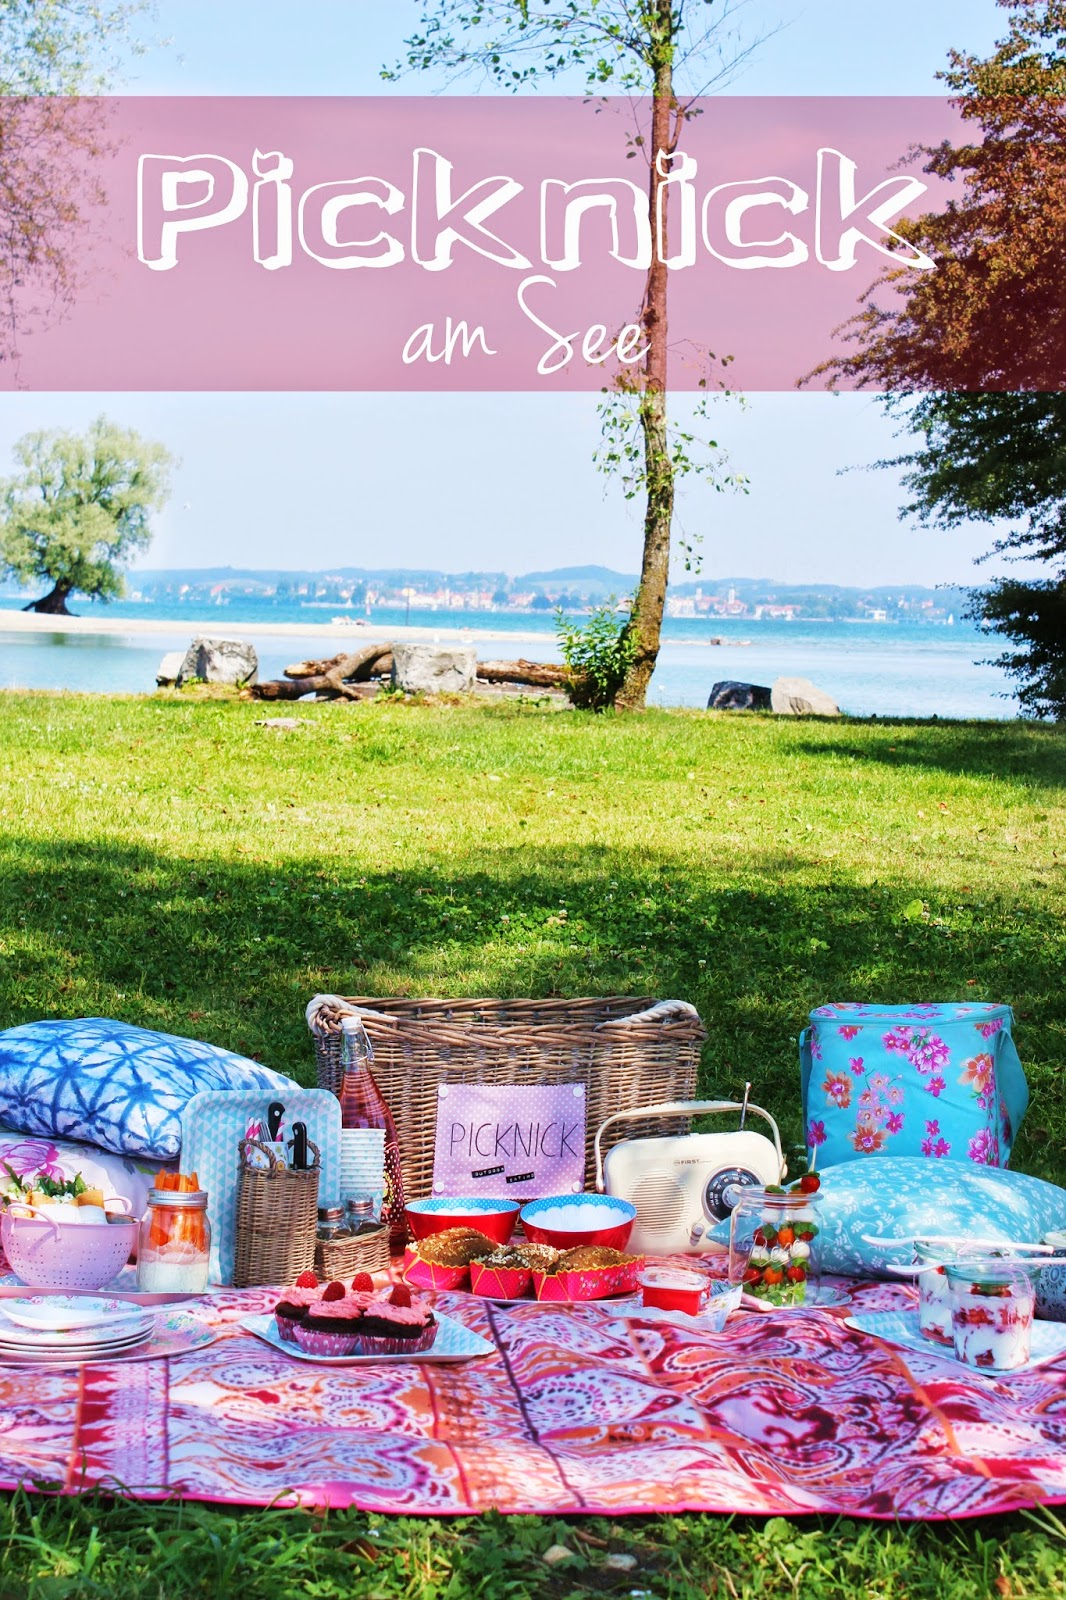 s 39 bastelkistle diy picknickkorb picknick am bodensee einfach herrlich. Black Bedroom Furniture Sets. Home Design Ideas